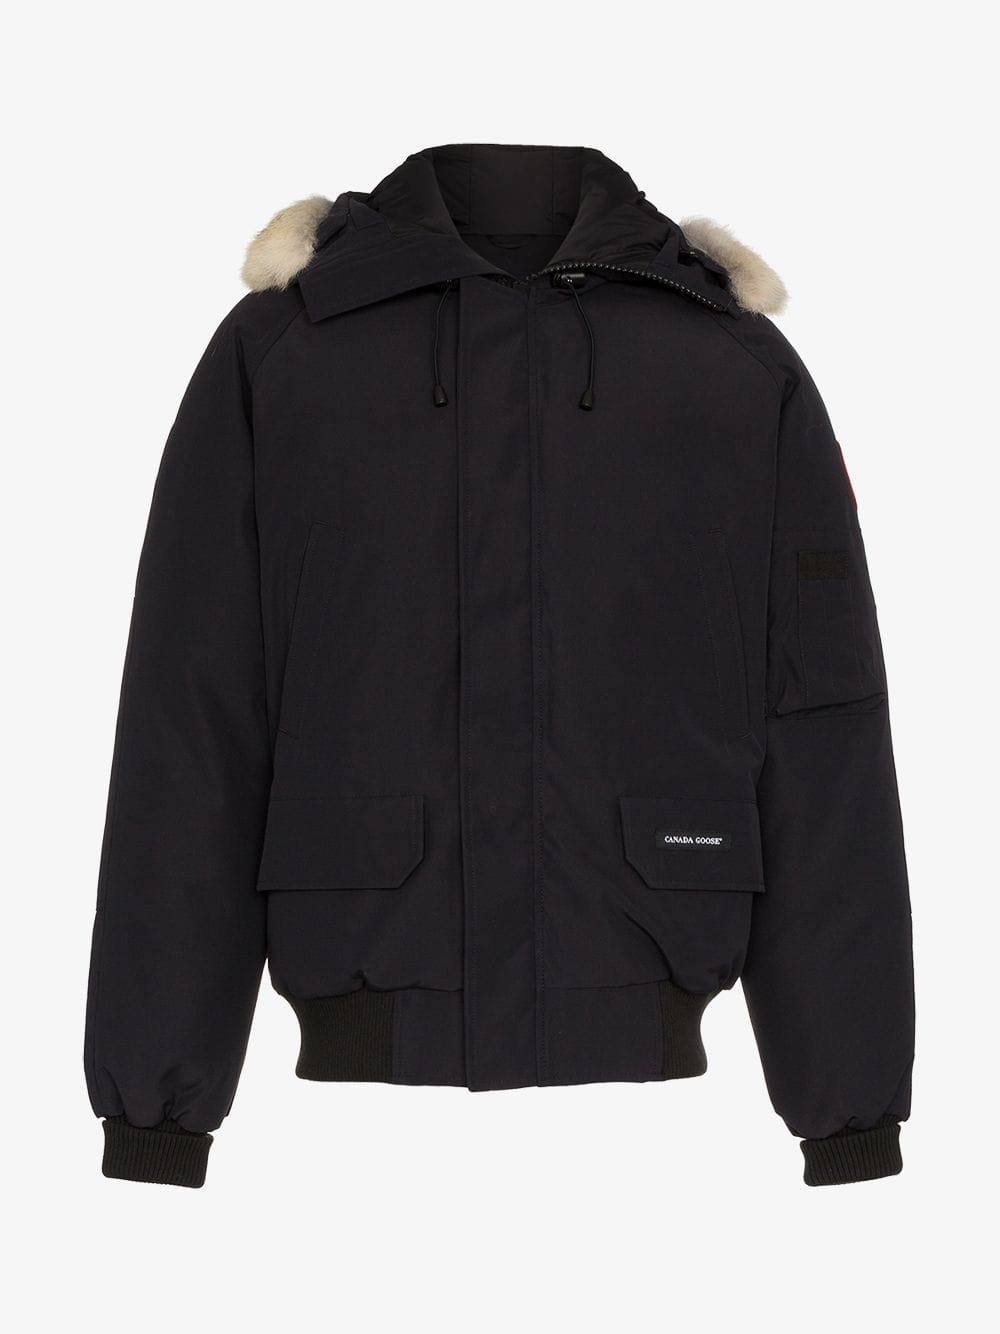 best men's Canada goose clothing